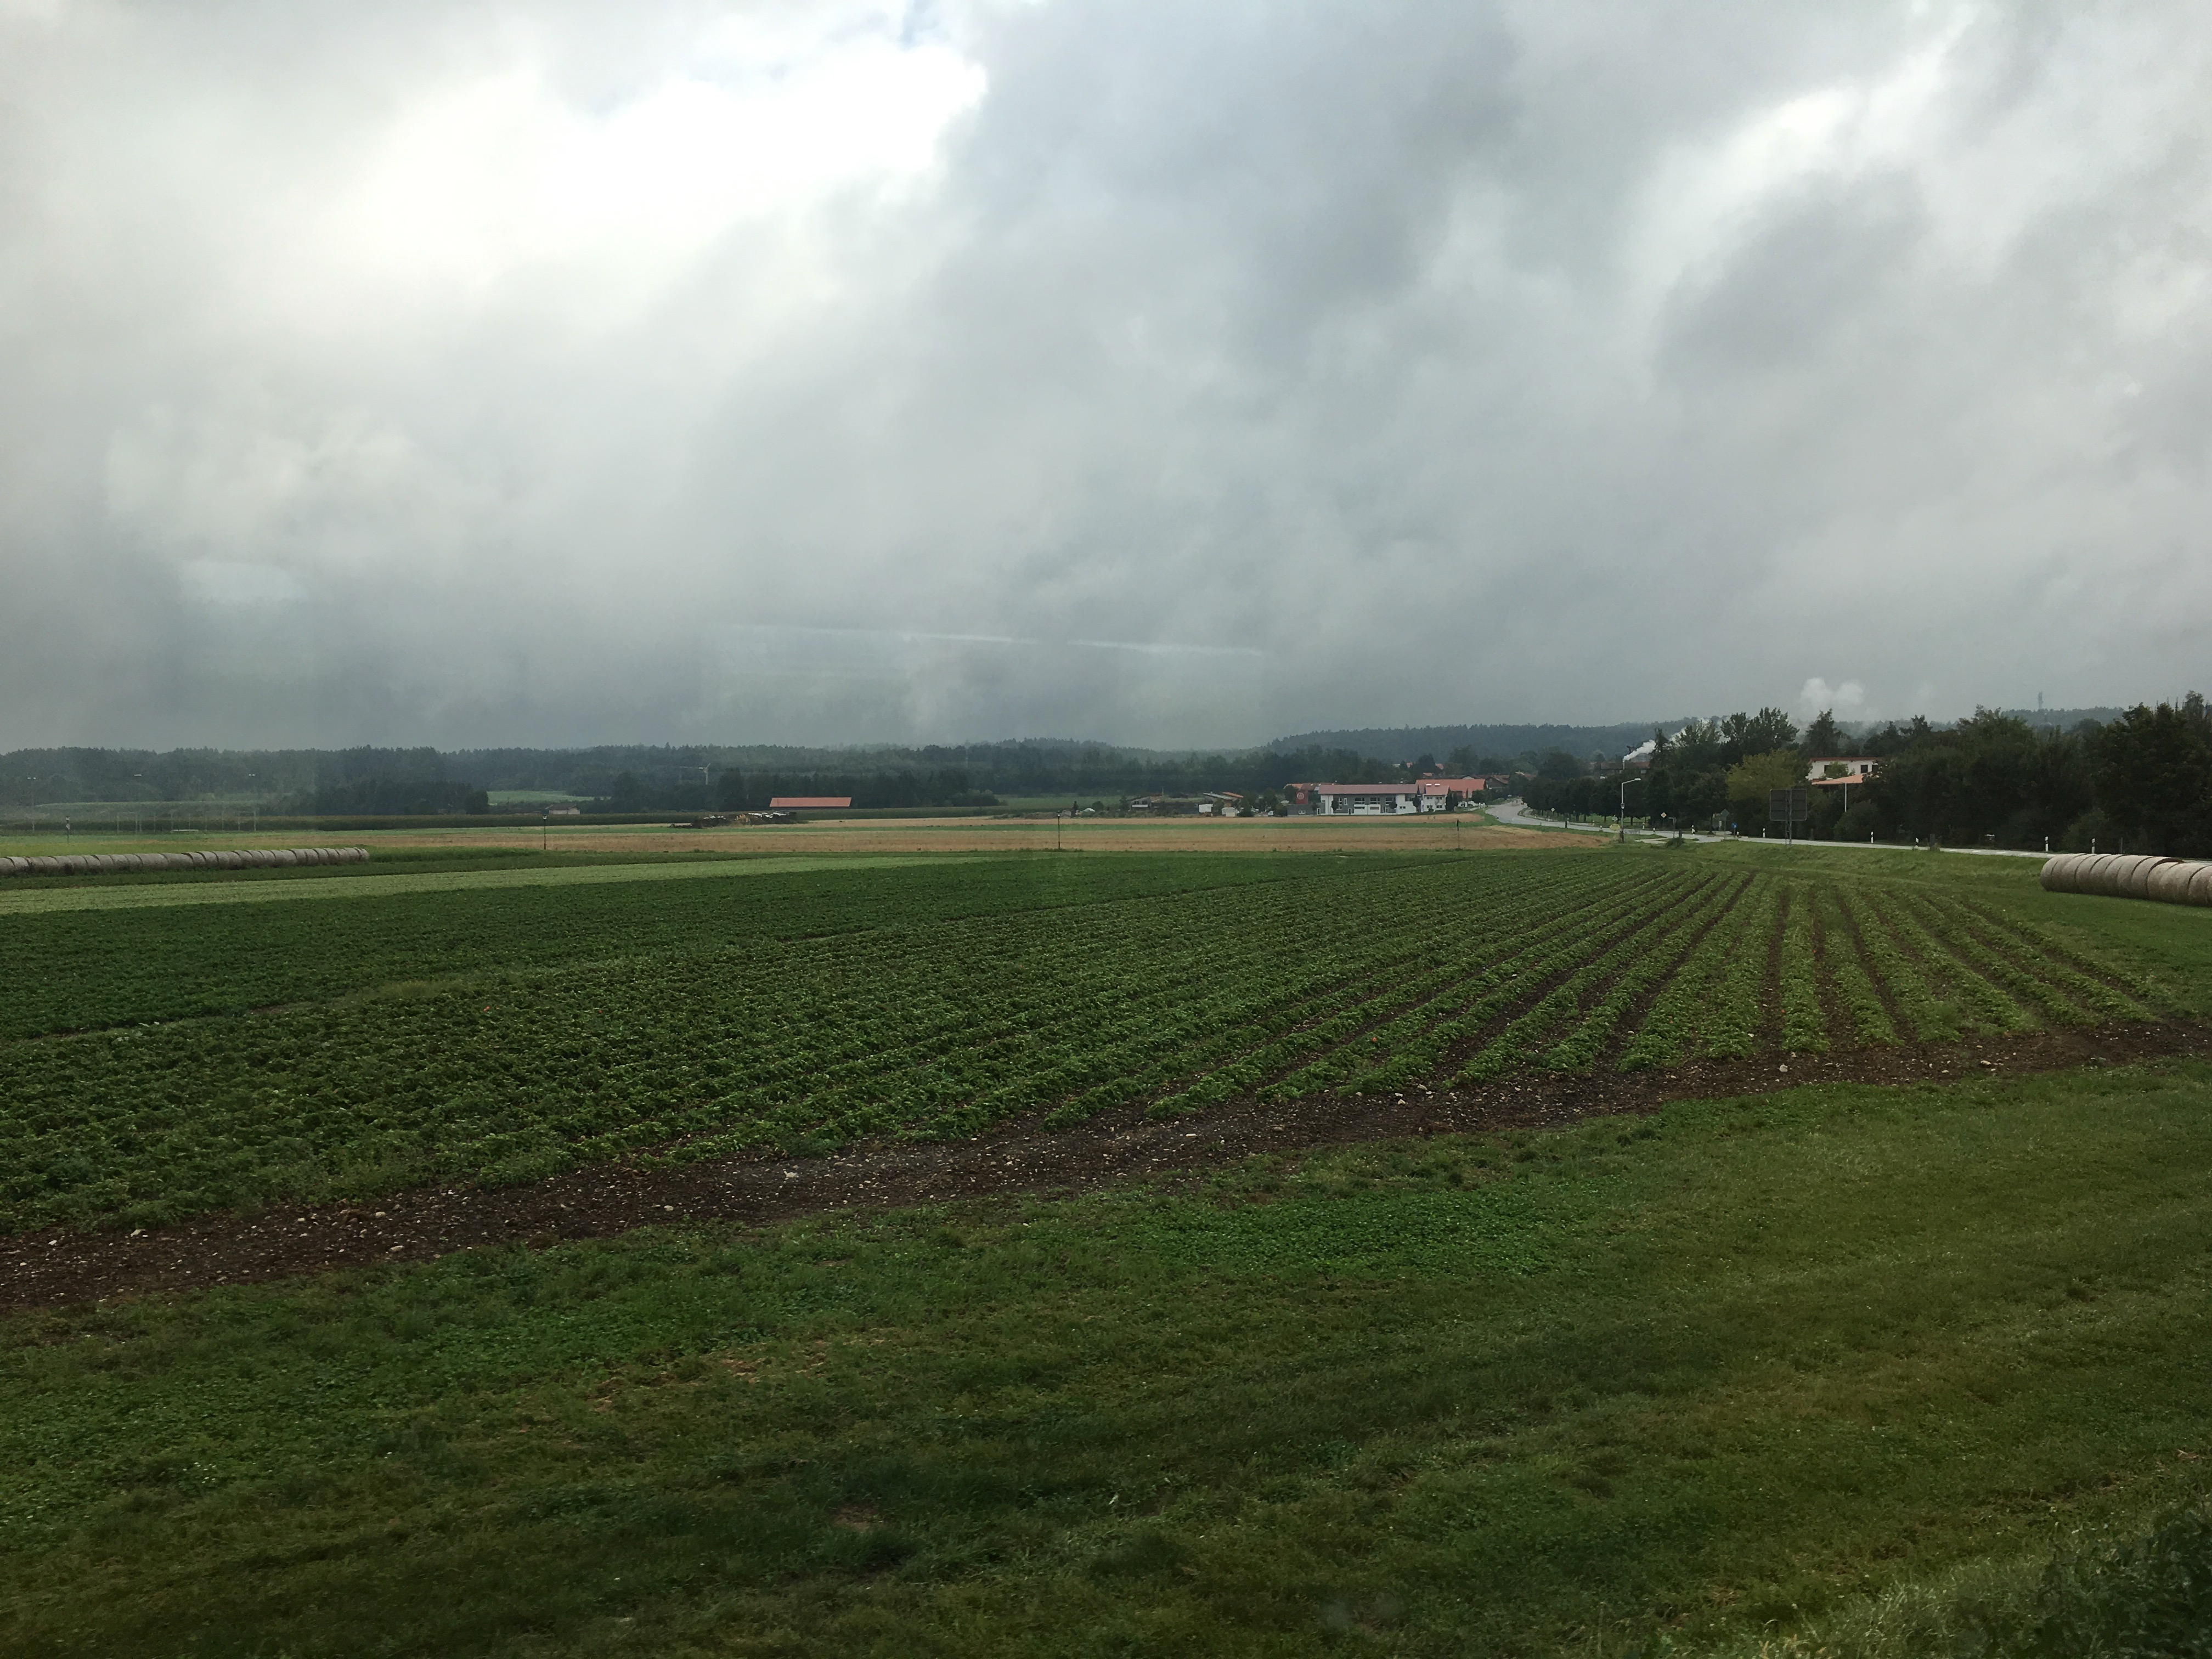 Ayinger Brewery in the distance from the train arriving into Aying, Germany.